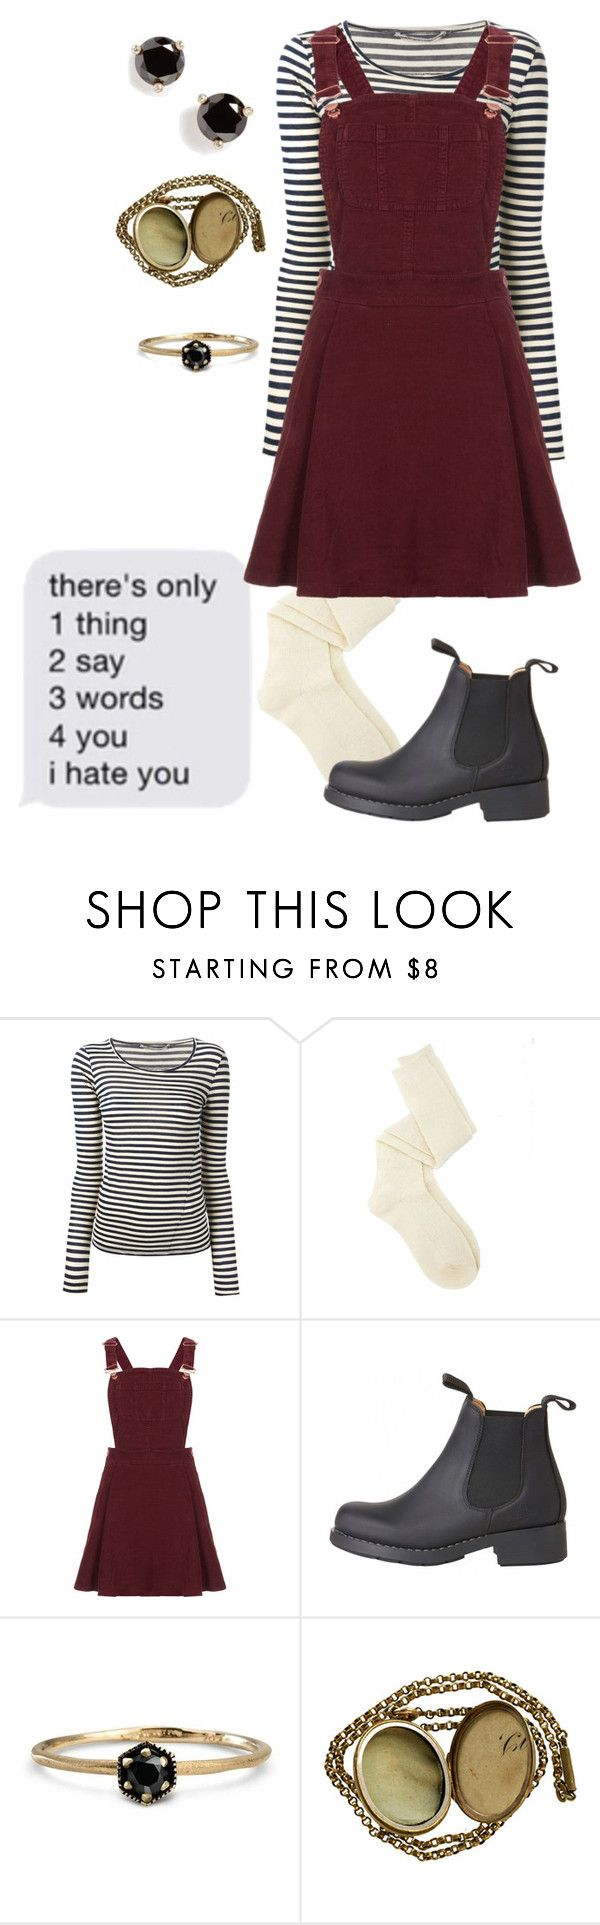 """i hate you"" by dreams-of-a-samurai ❤ liked on Polyvore featuring Humanoid, Charlotte Russe, Topshop, Coven, Satomi Kawakita and Kate Spade"